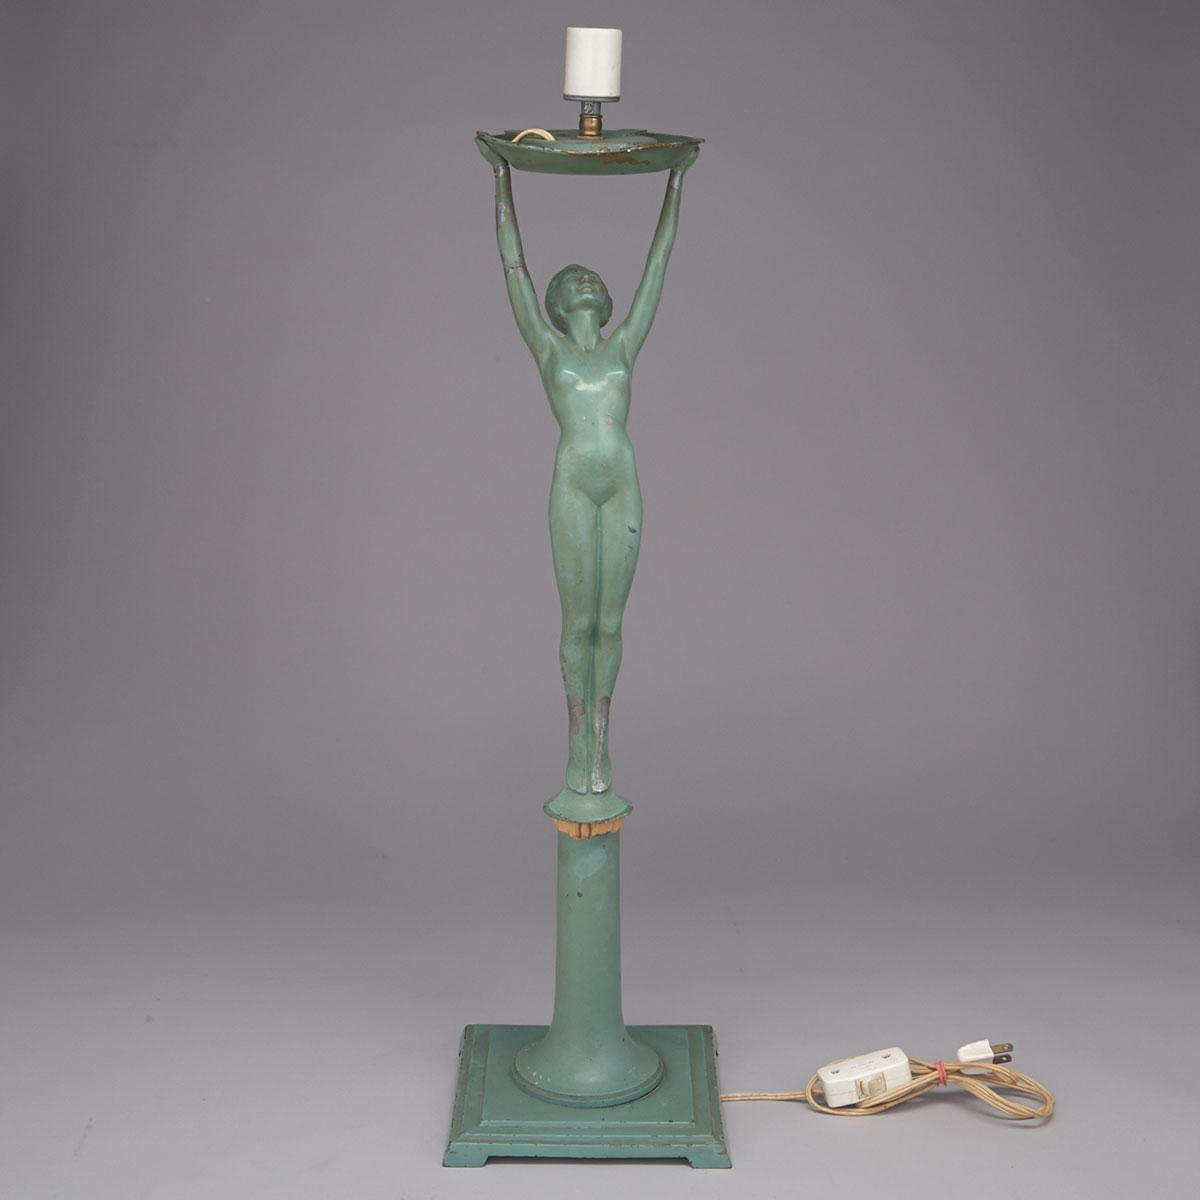 English Art Deco Patinated Metal Figural Table Lamp, c.1925